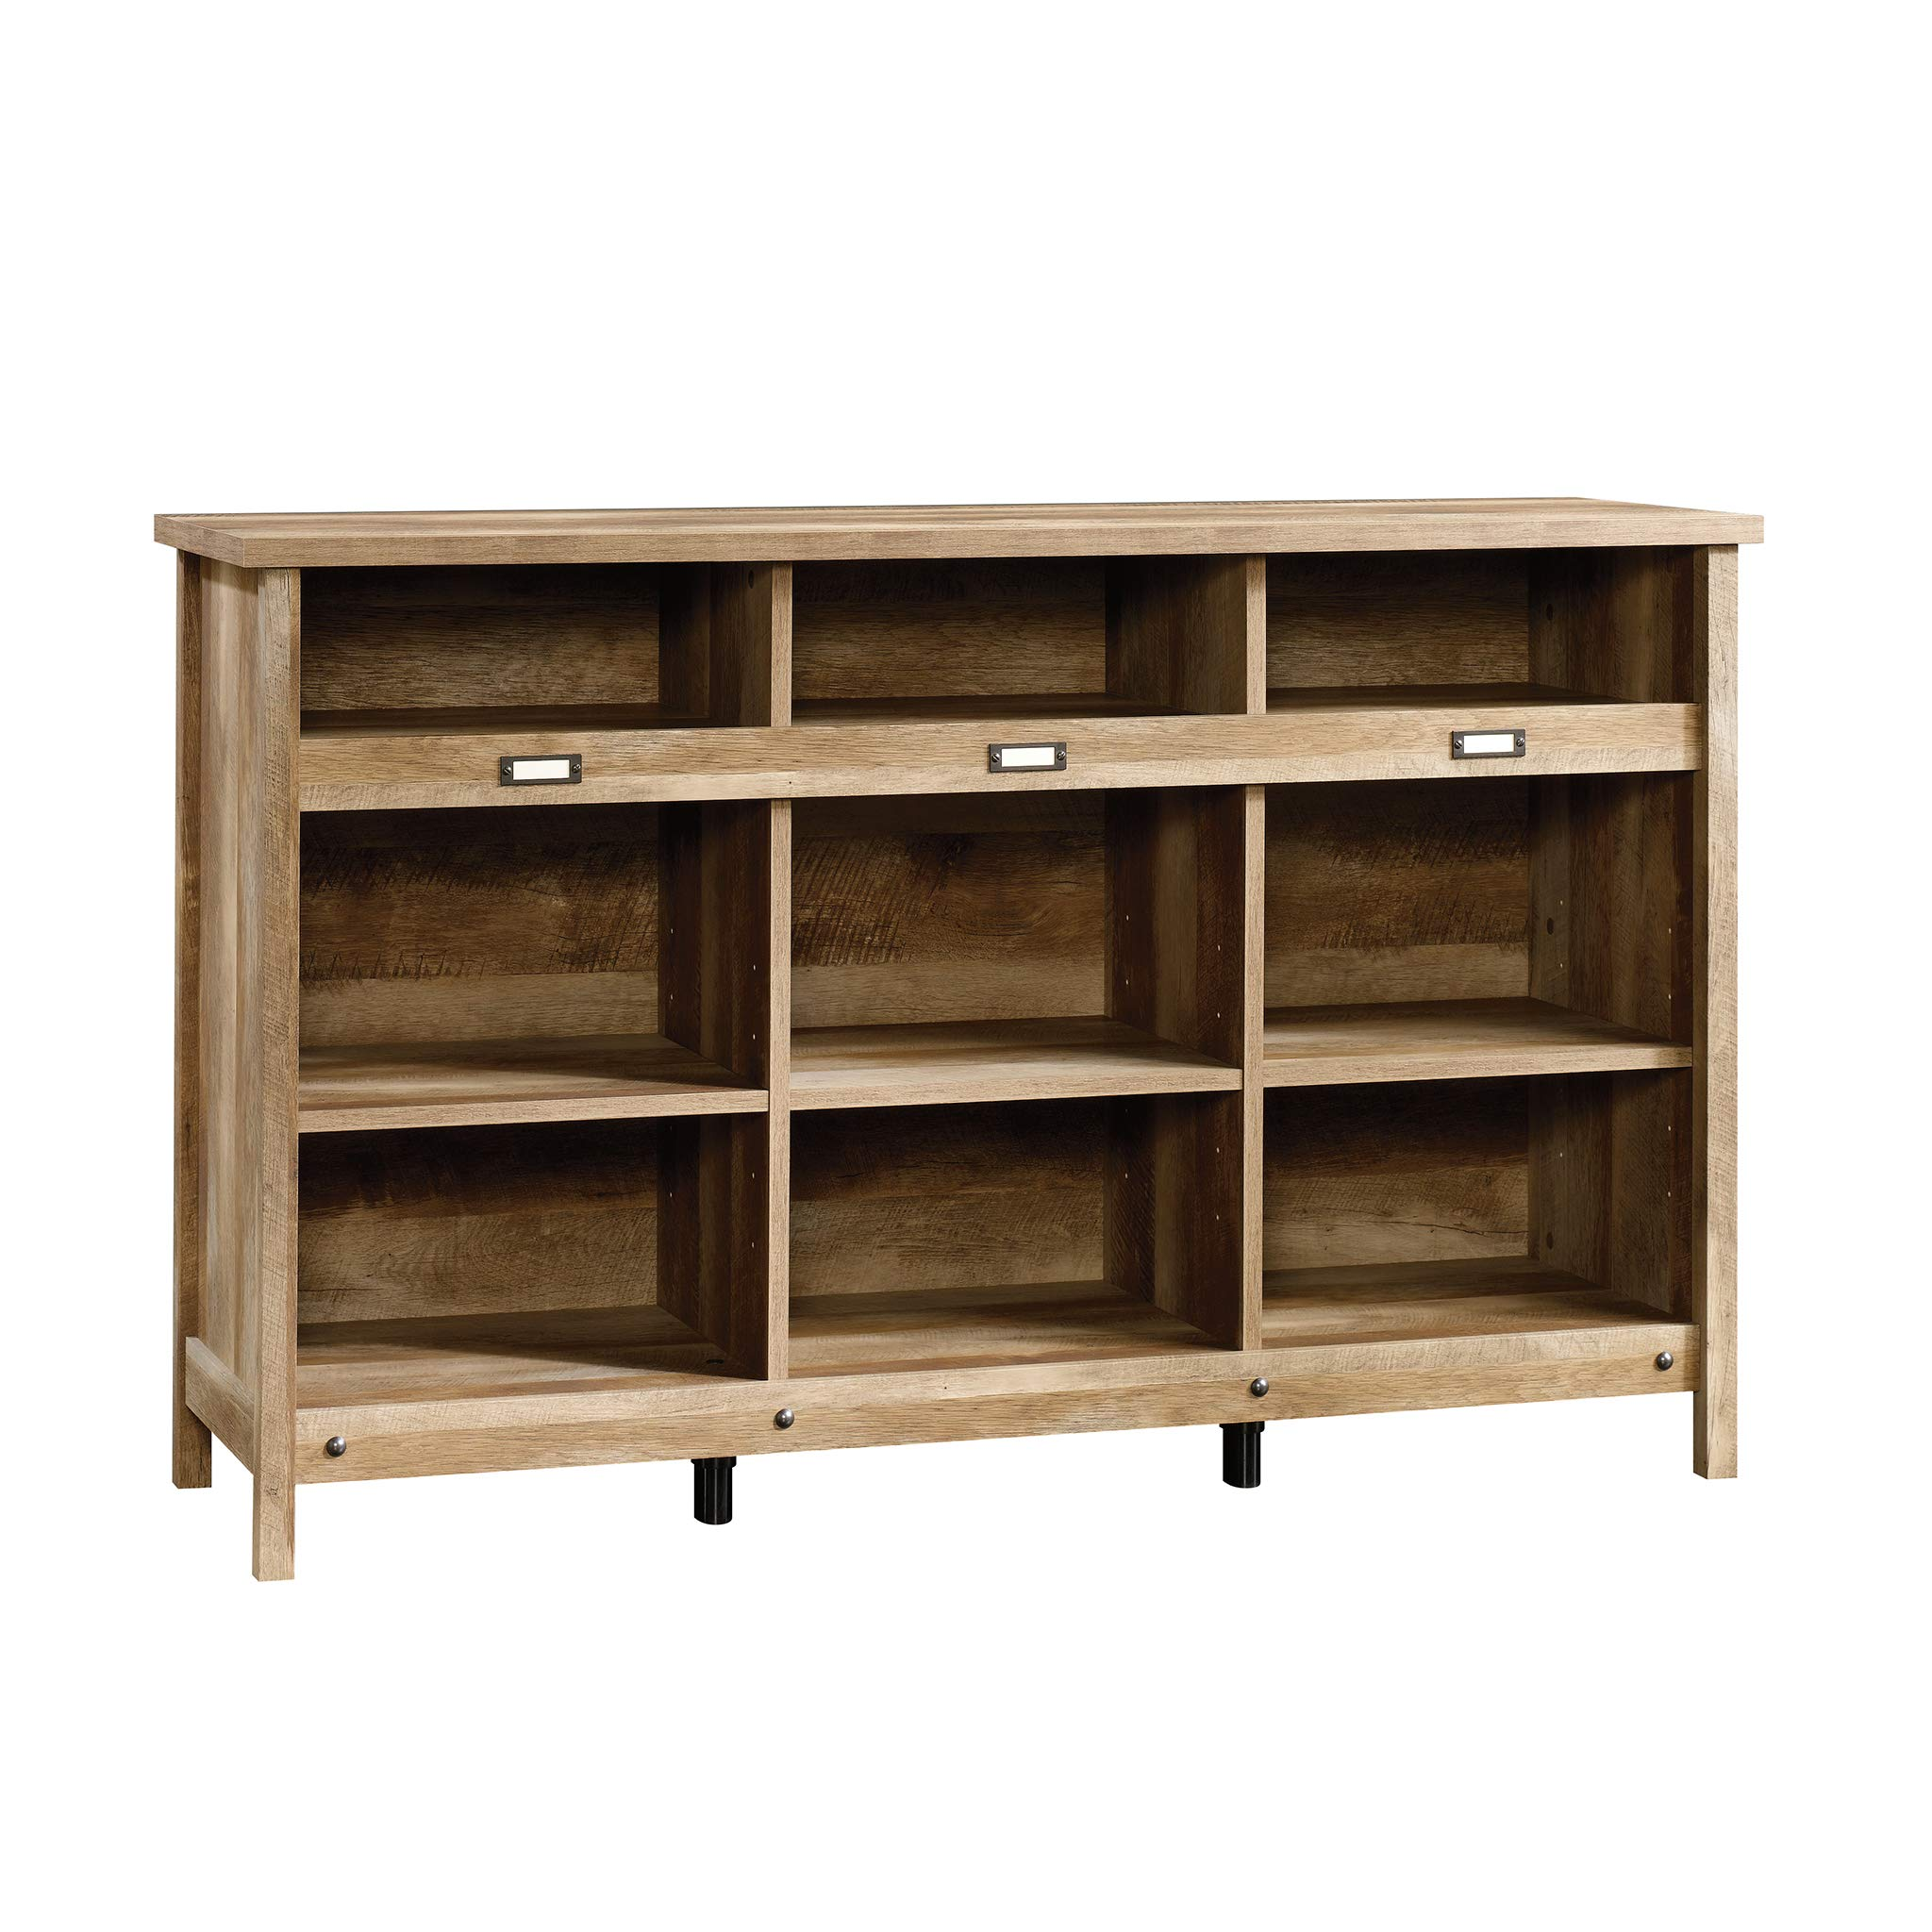 Sauder 418344 Adept Storage Credenza, L: 58.19'' x W: 17.17'' x H: 36.26'', Craftsman Oak finish by Sauder